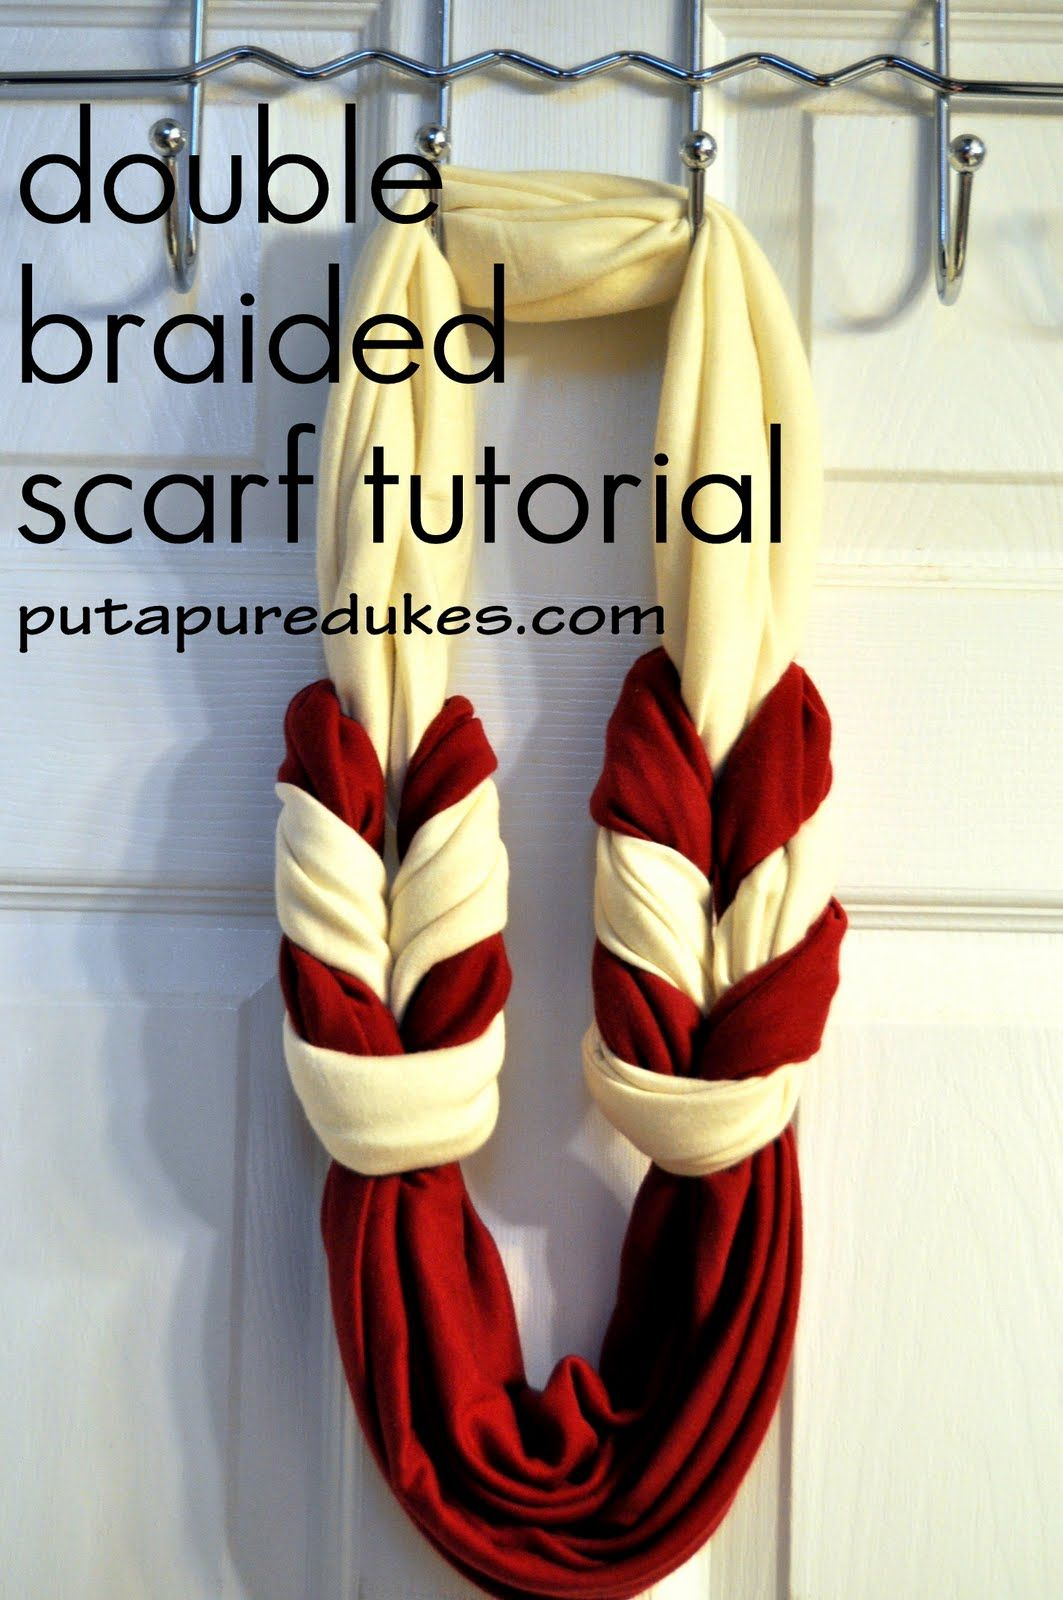 double braided scarf tutorial.